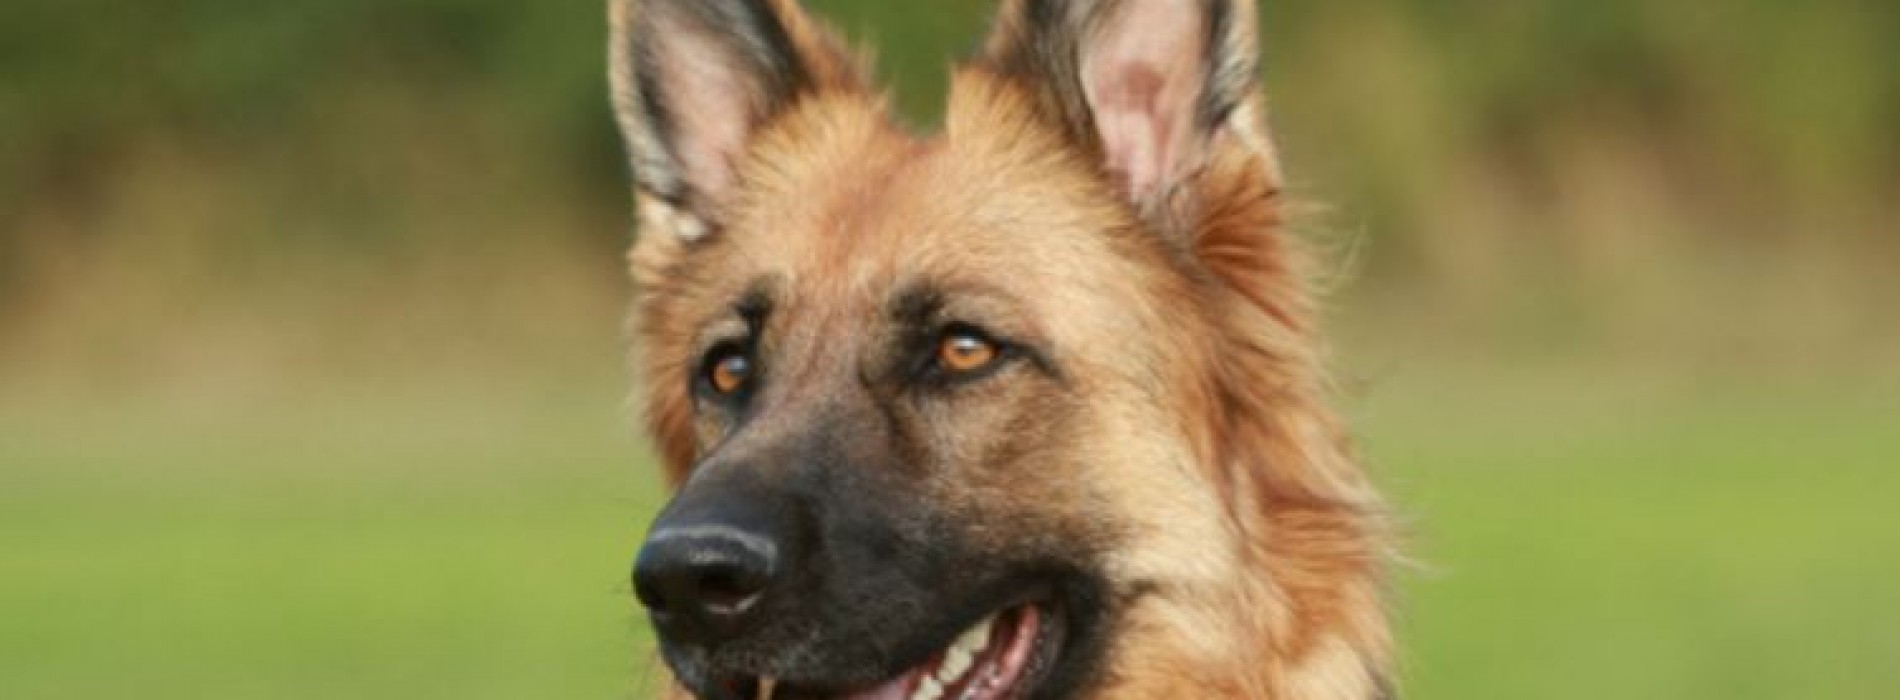 Reviews – The Best Dog Food For German Shepherd